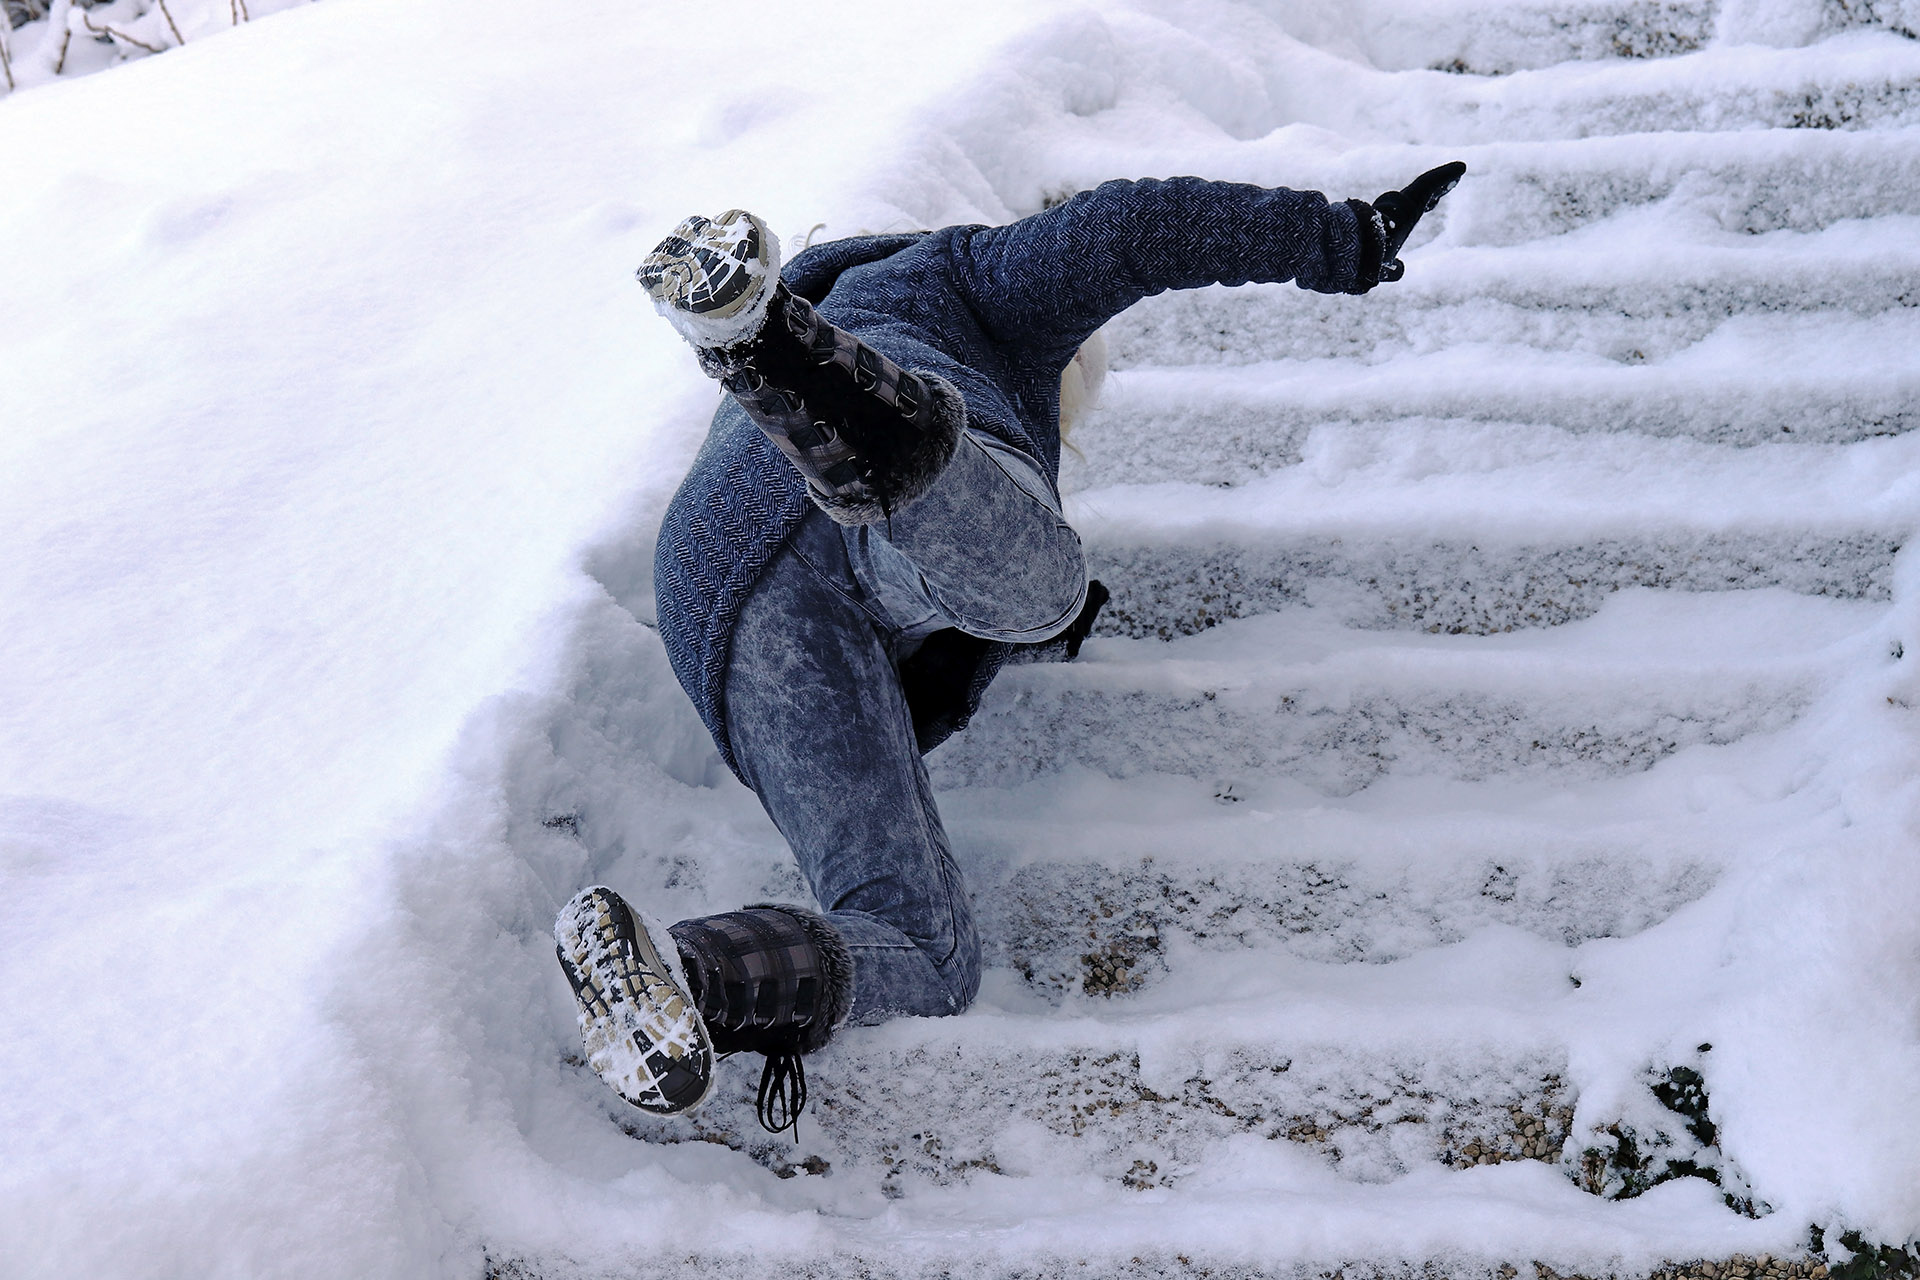 Person Suffering Slip and Fall Upon Icy Stairs